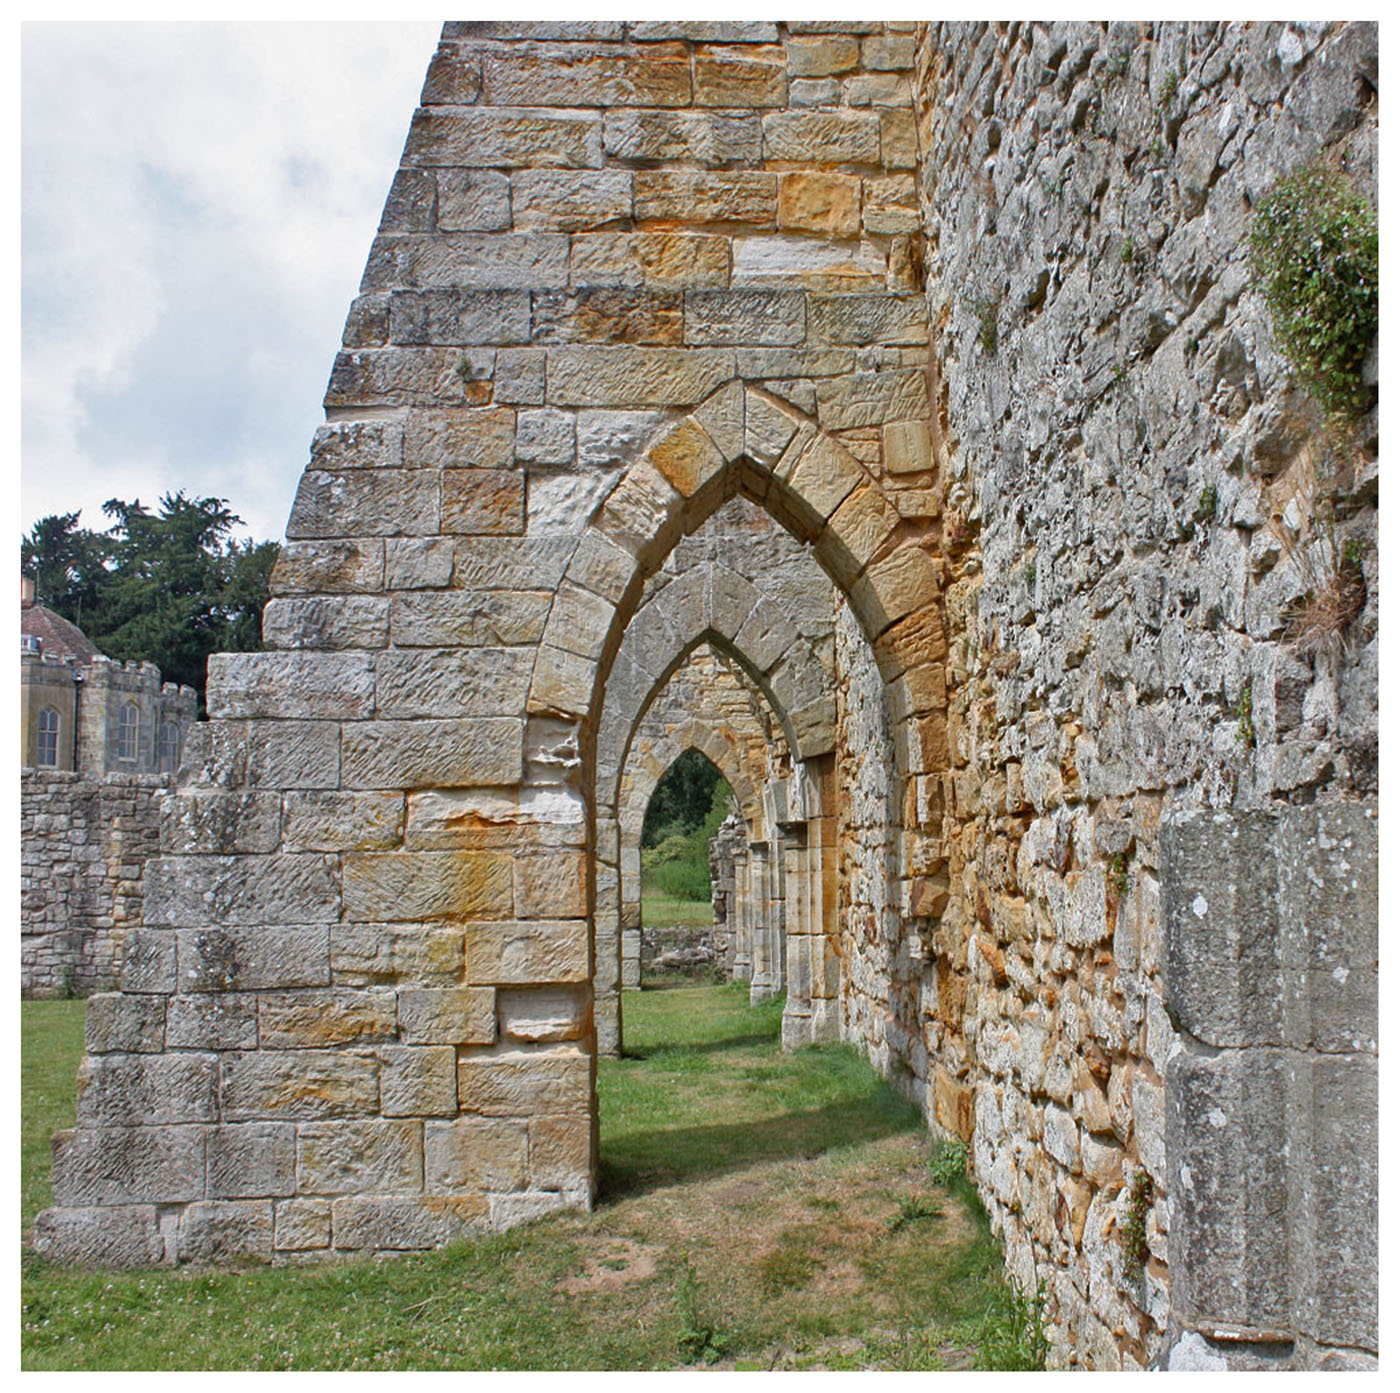 BAYHAM ABBEY by Richard Peters